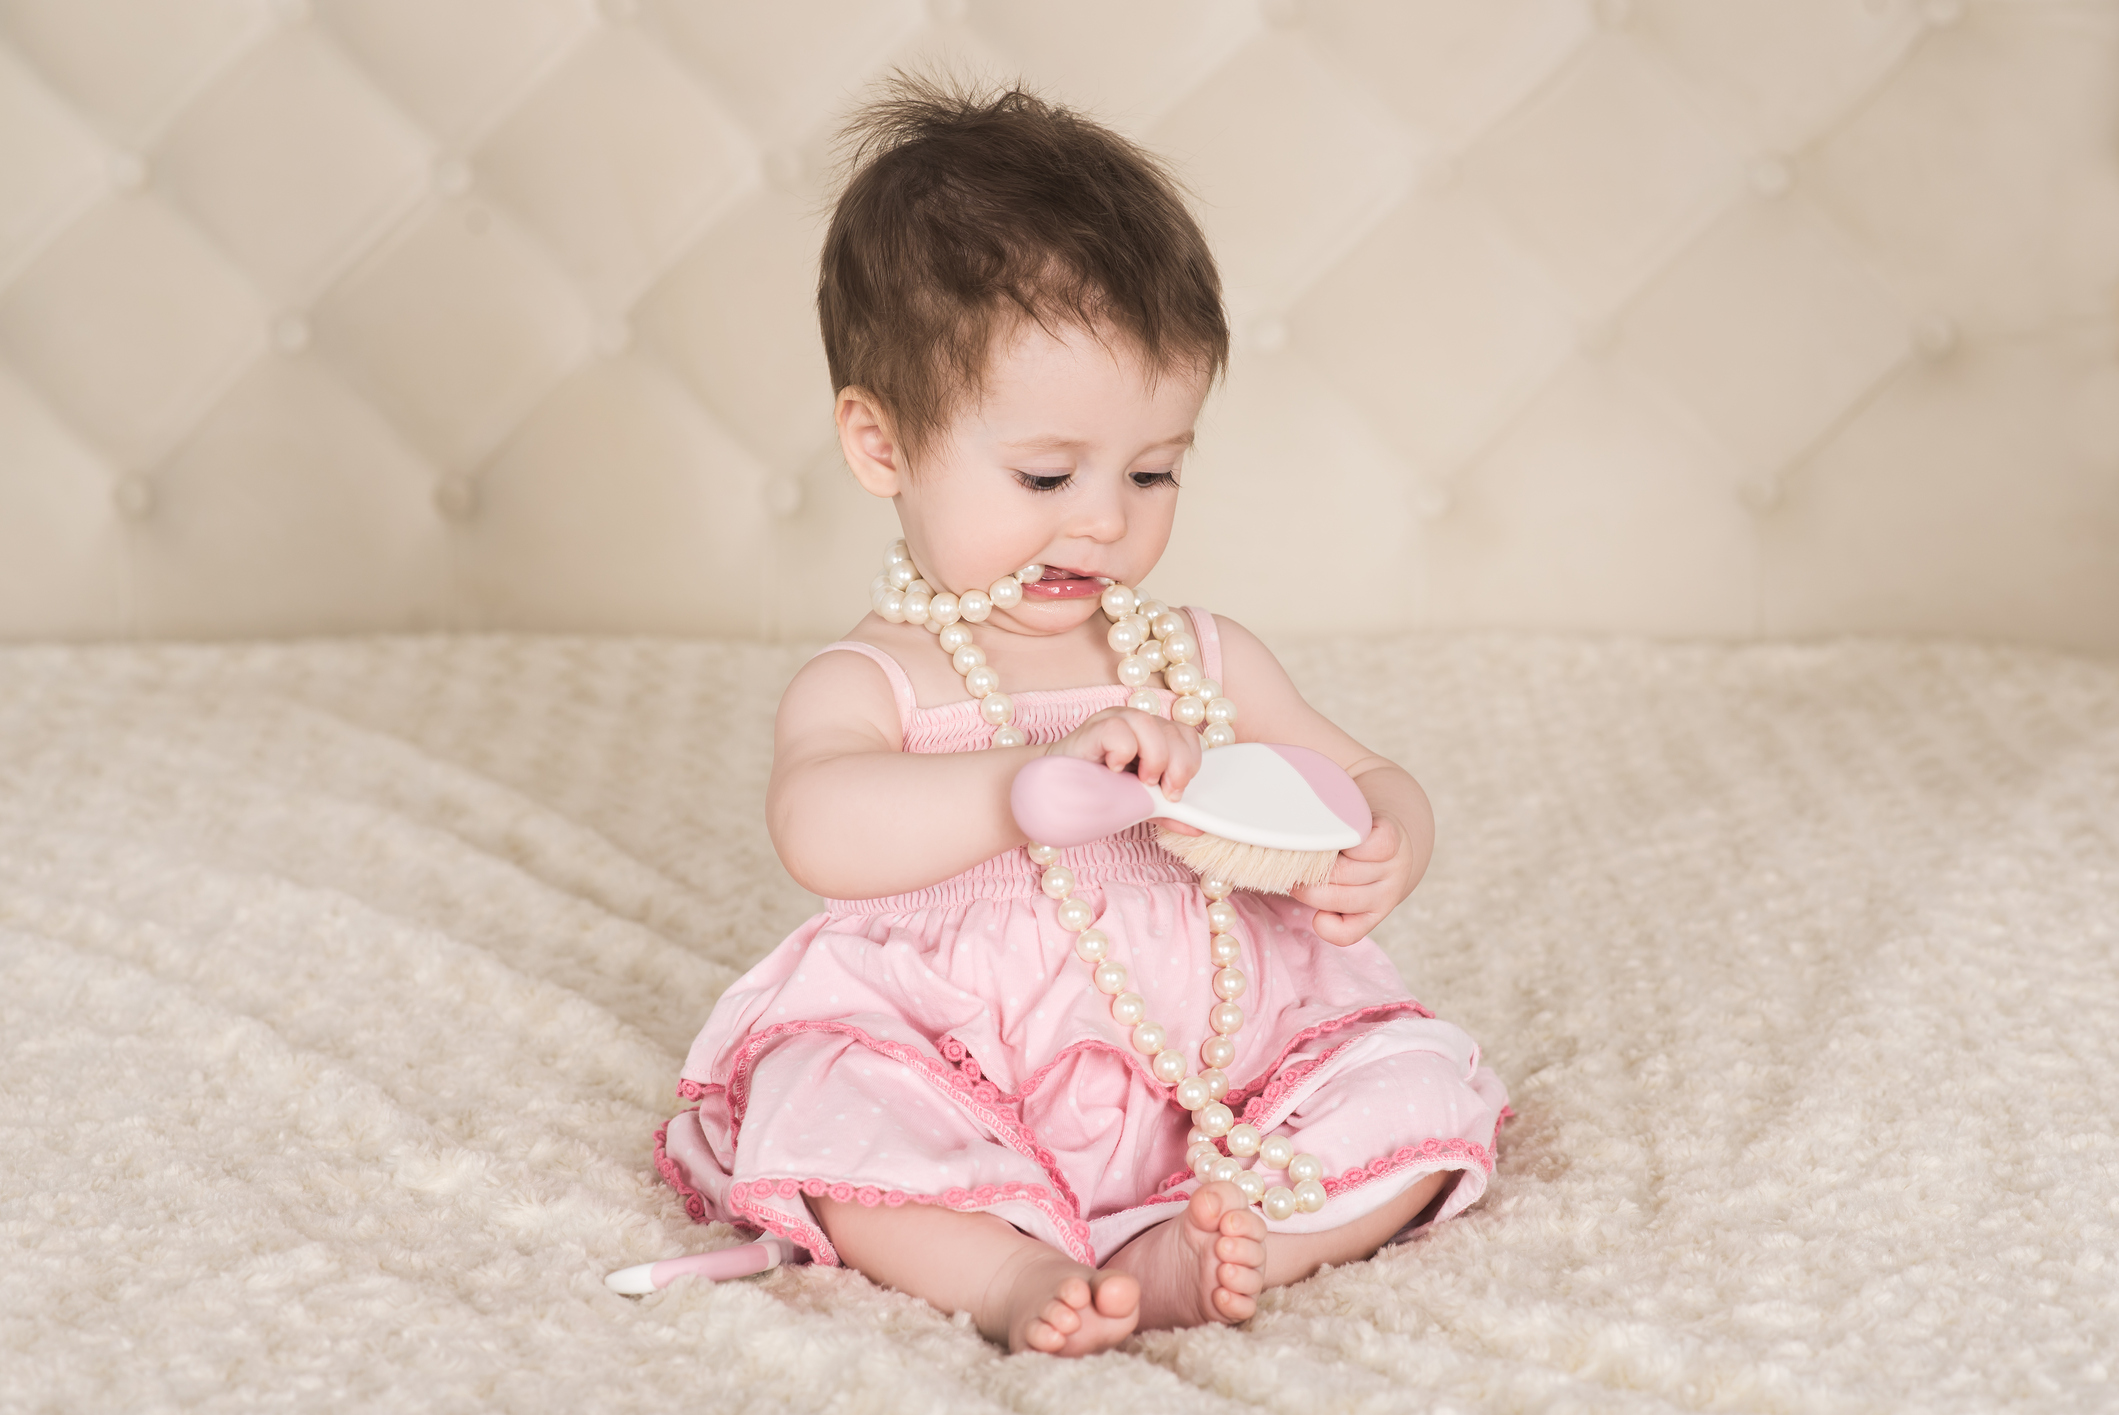 Is it safe for your baby to wear jewelry?